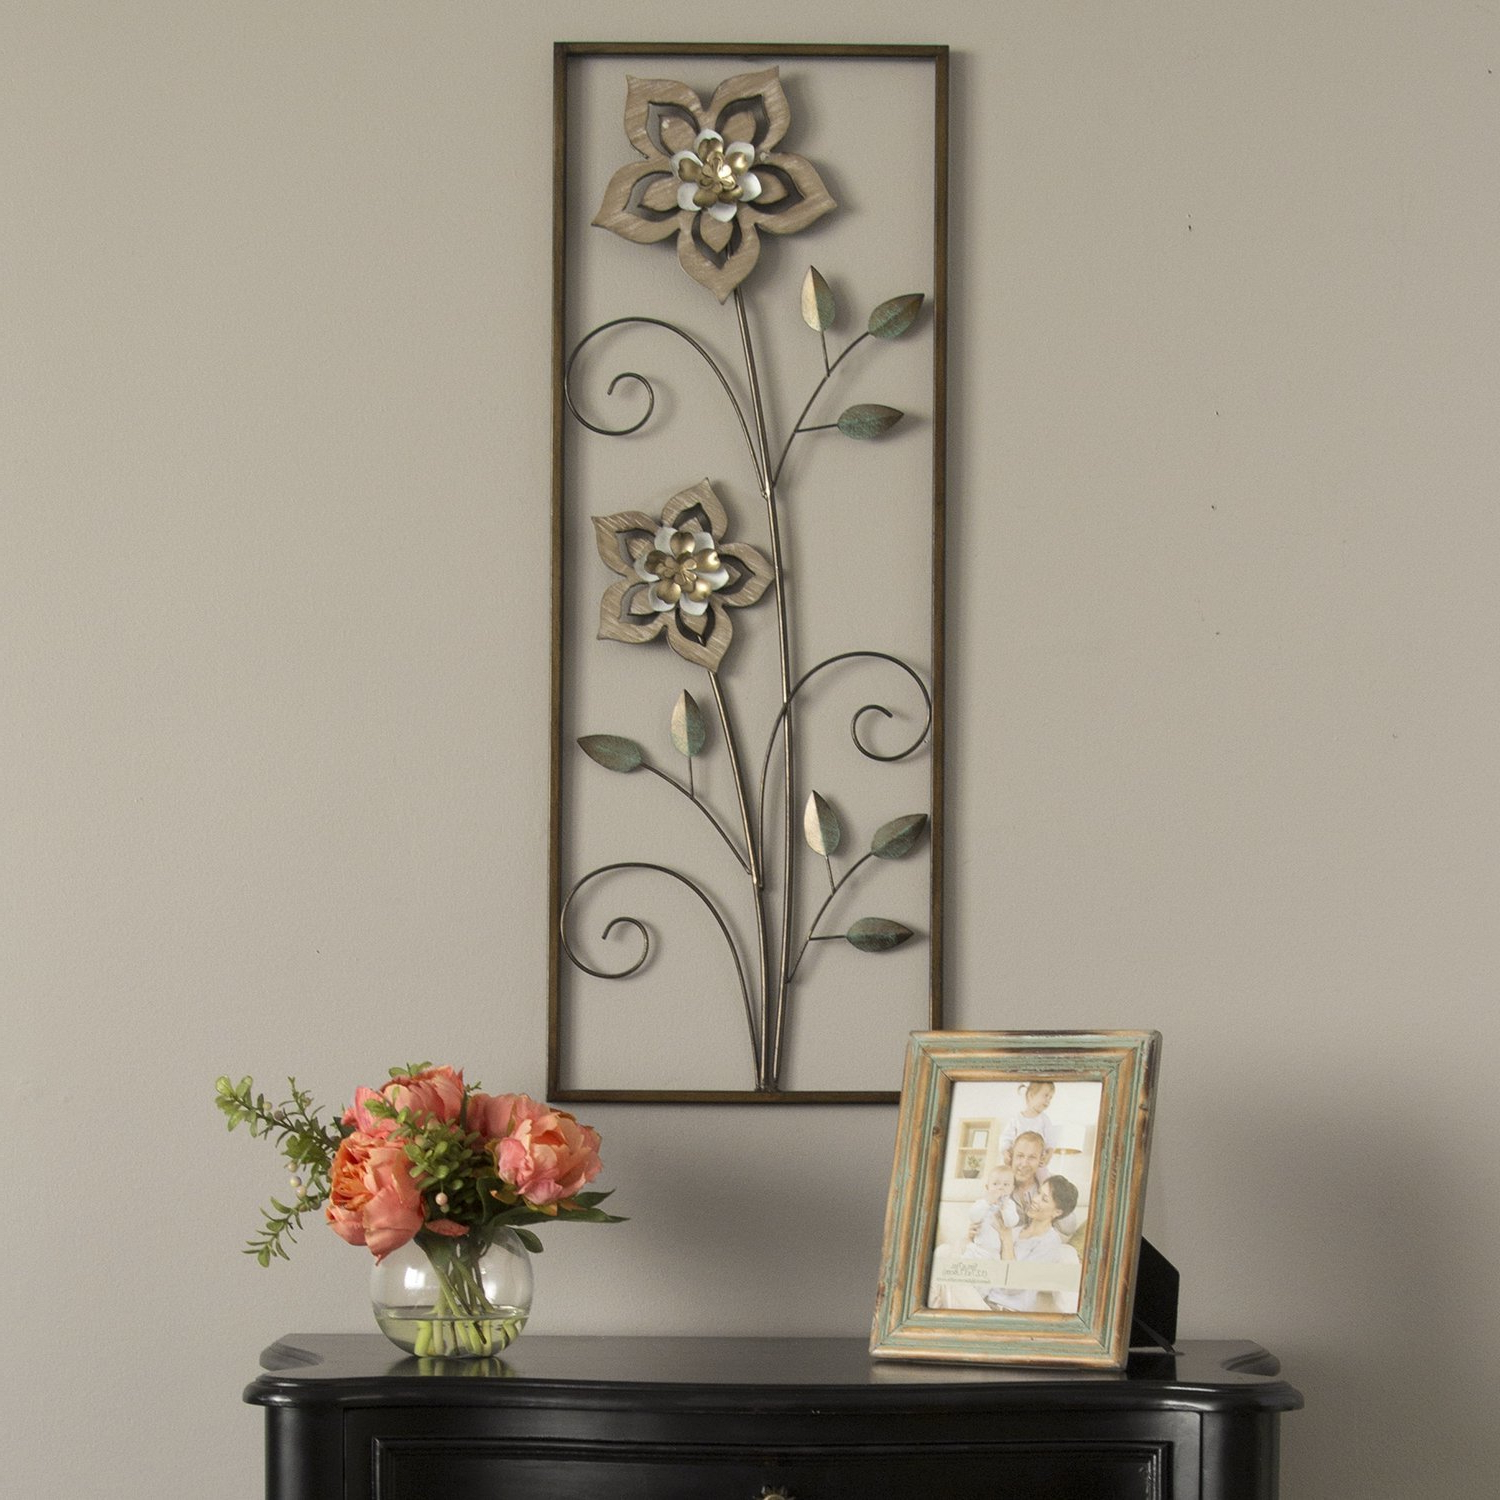 Maxwell Wood And Metal Wall Decor Within 2019 Wood Flower Panel Wall Décor (View 12 of 20)